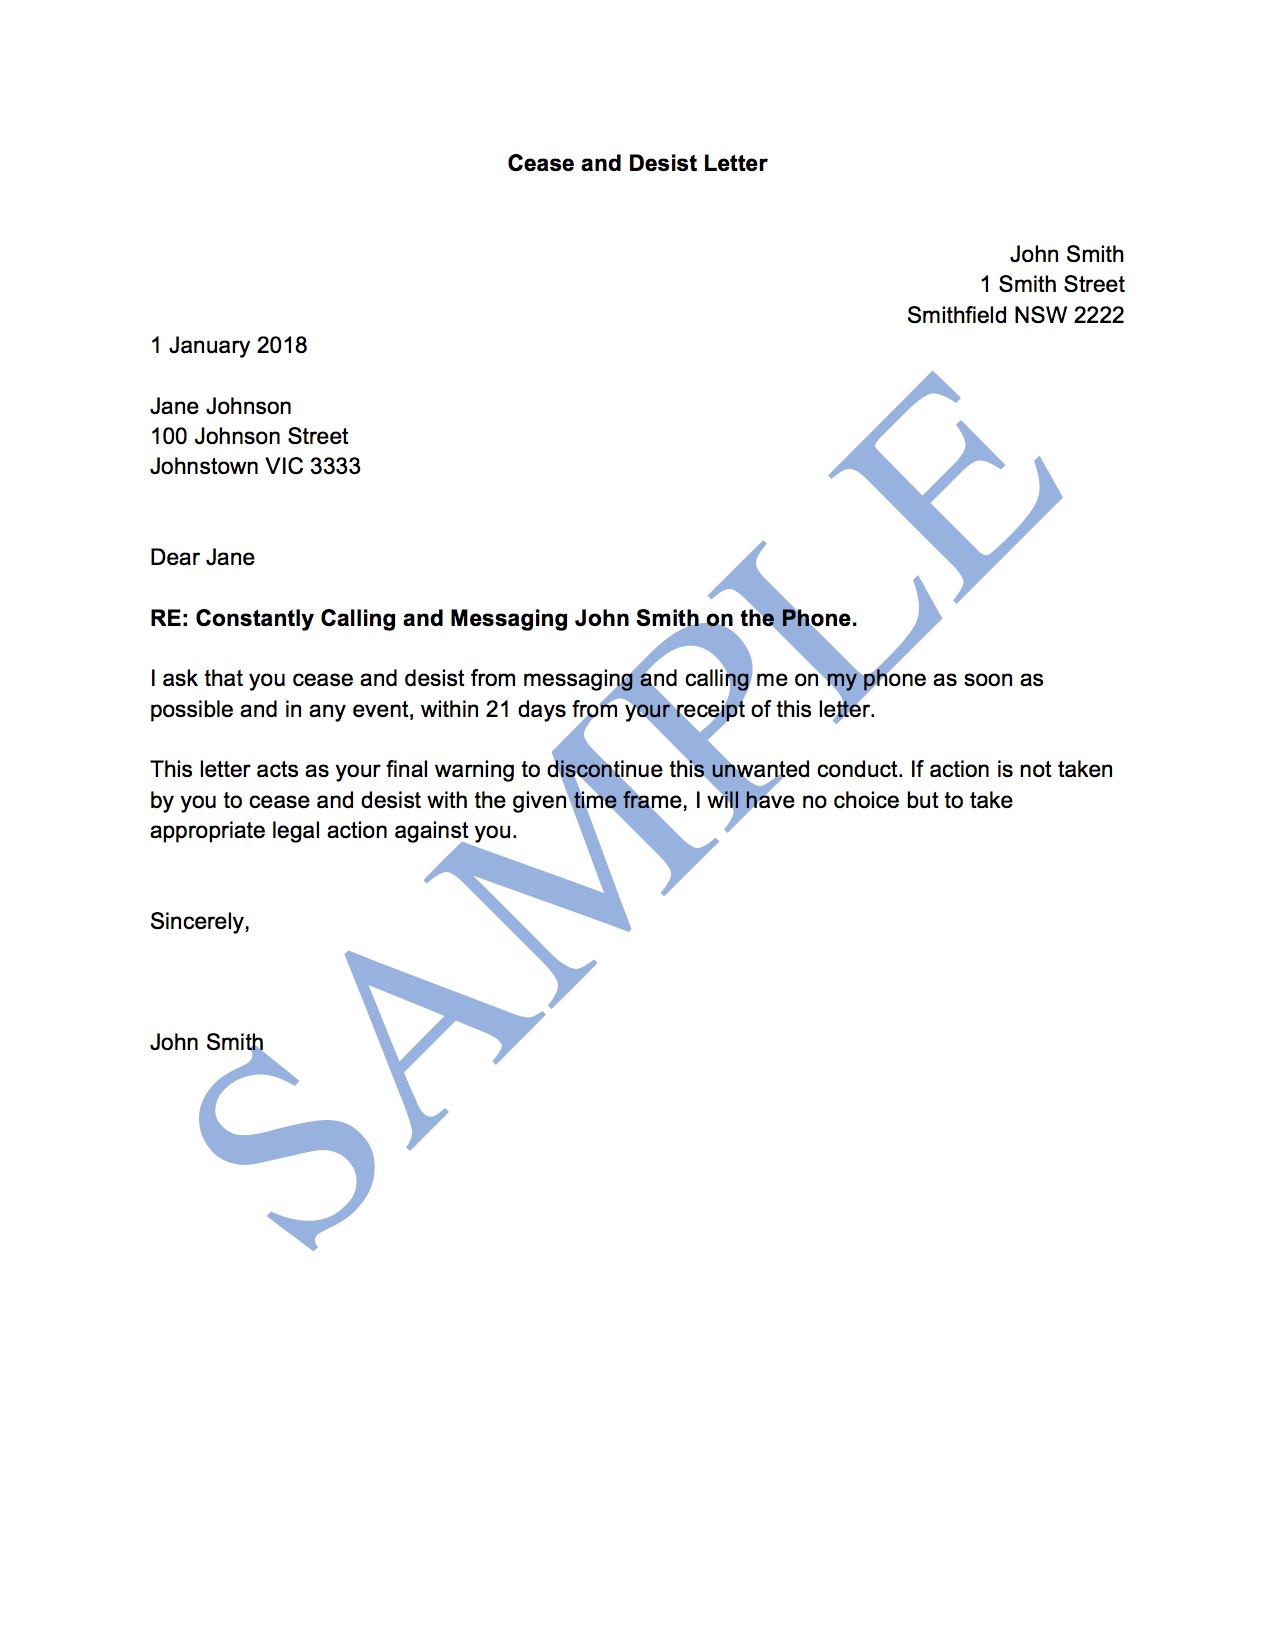 Sample Complaint Letter For Defamation Of Character from lp-public-images.s3-ap-southeast-2.amazonaws.com